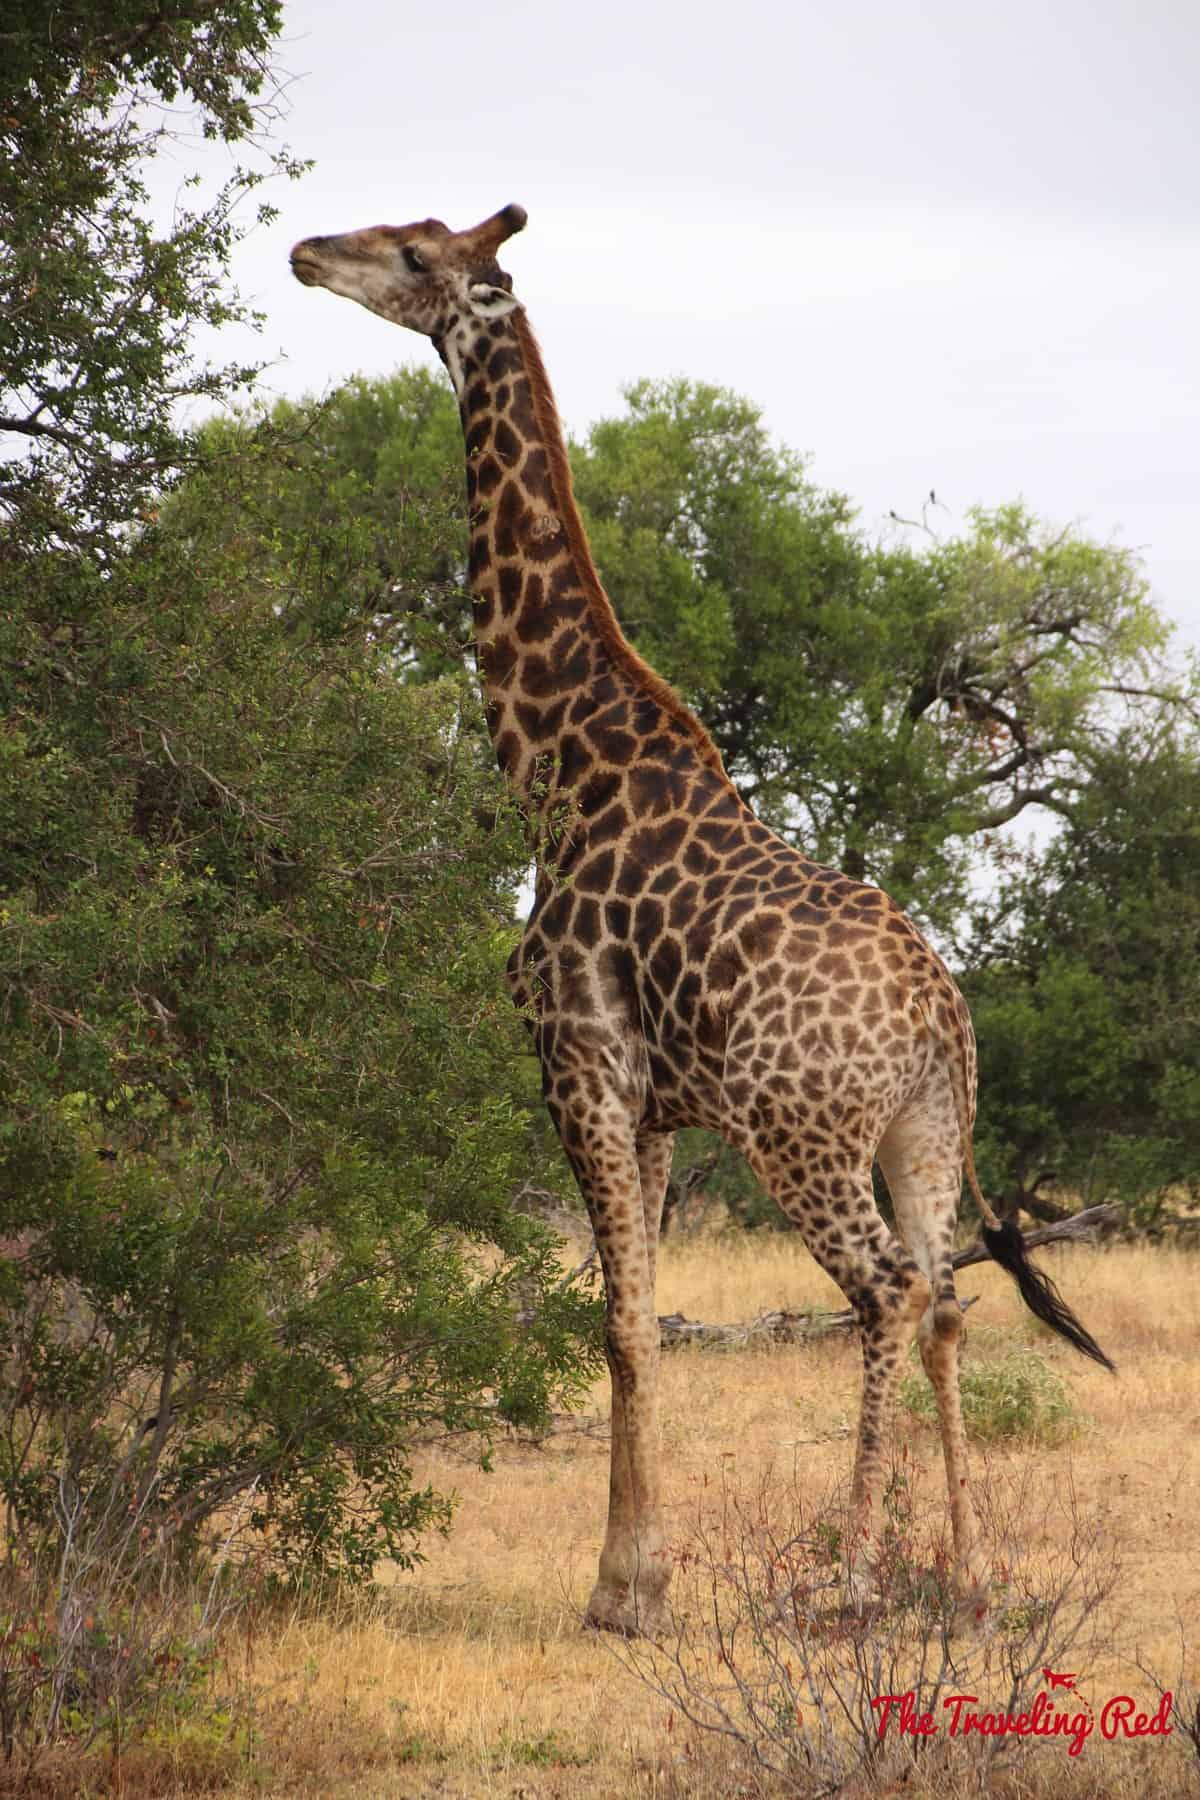 A giraffe in South Africa